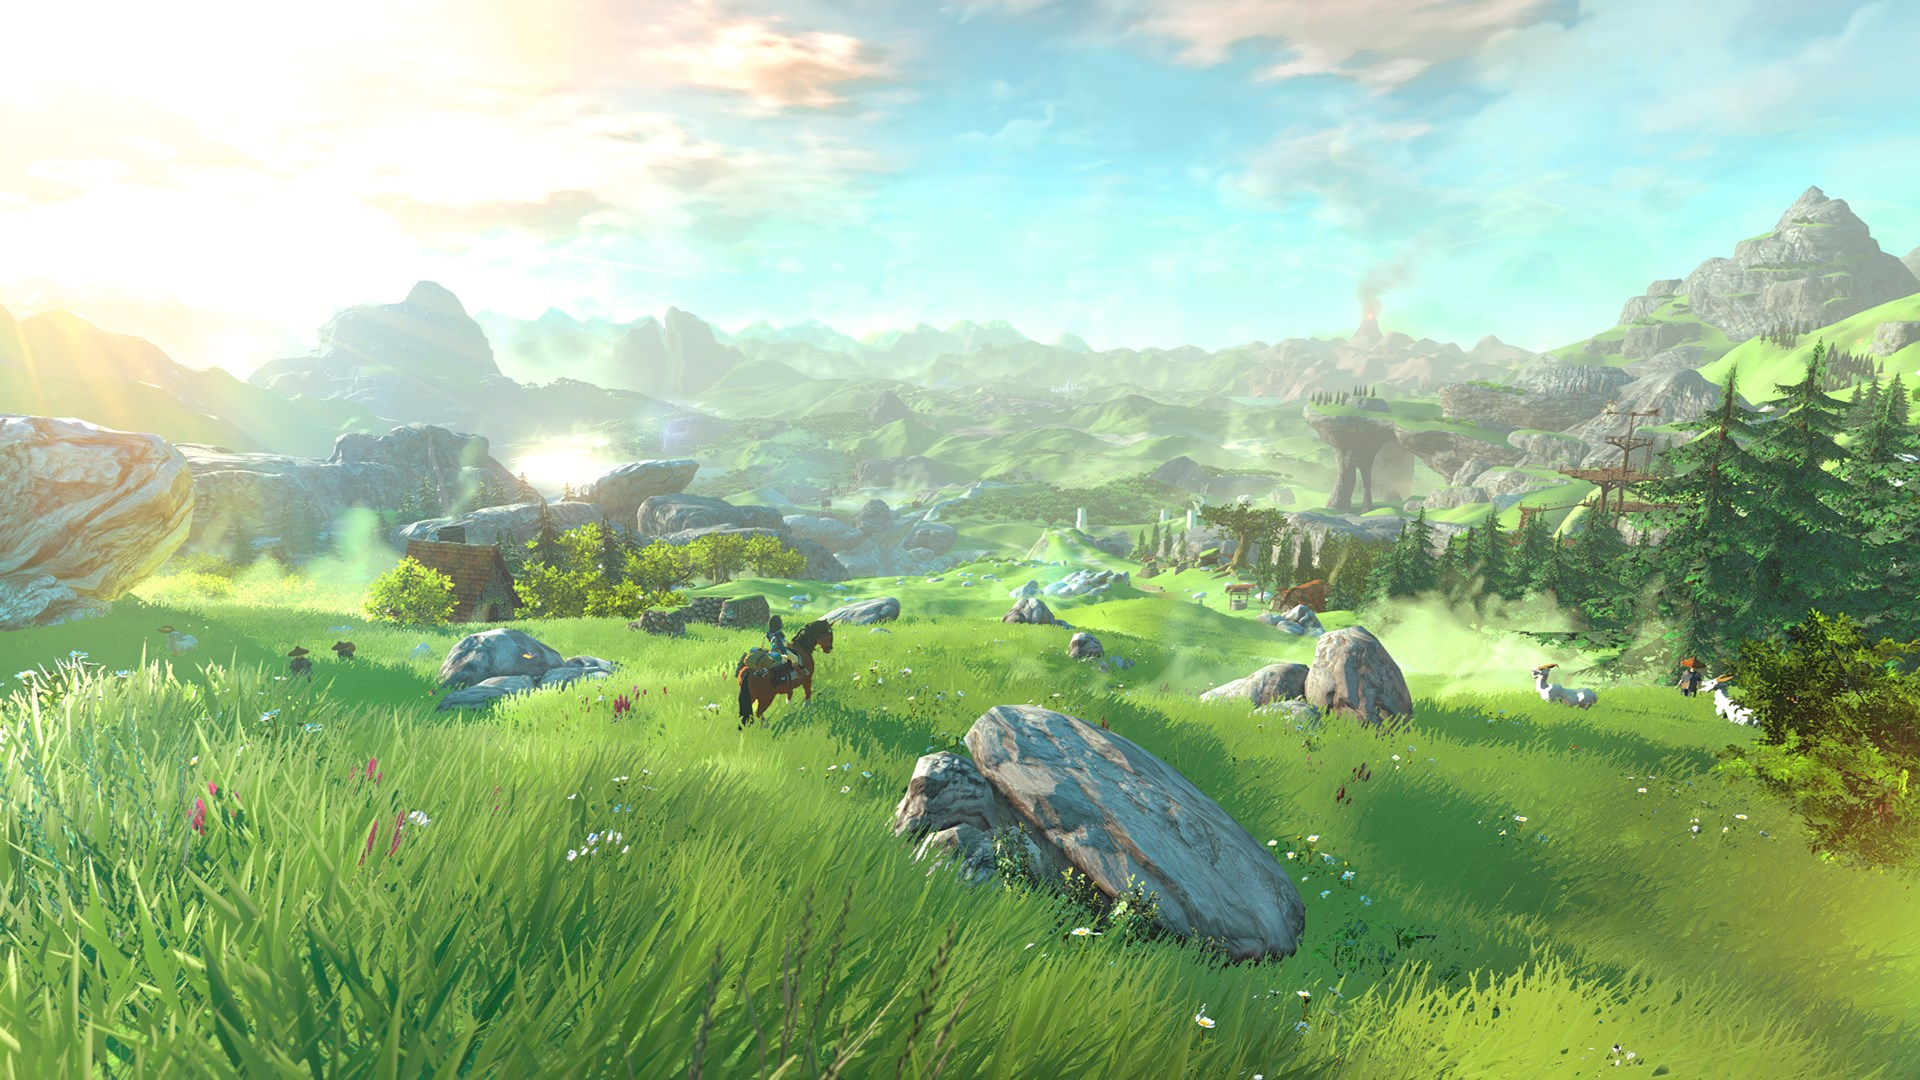 Aonuma may have something to show about Zelda being more than a single-player experience next year